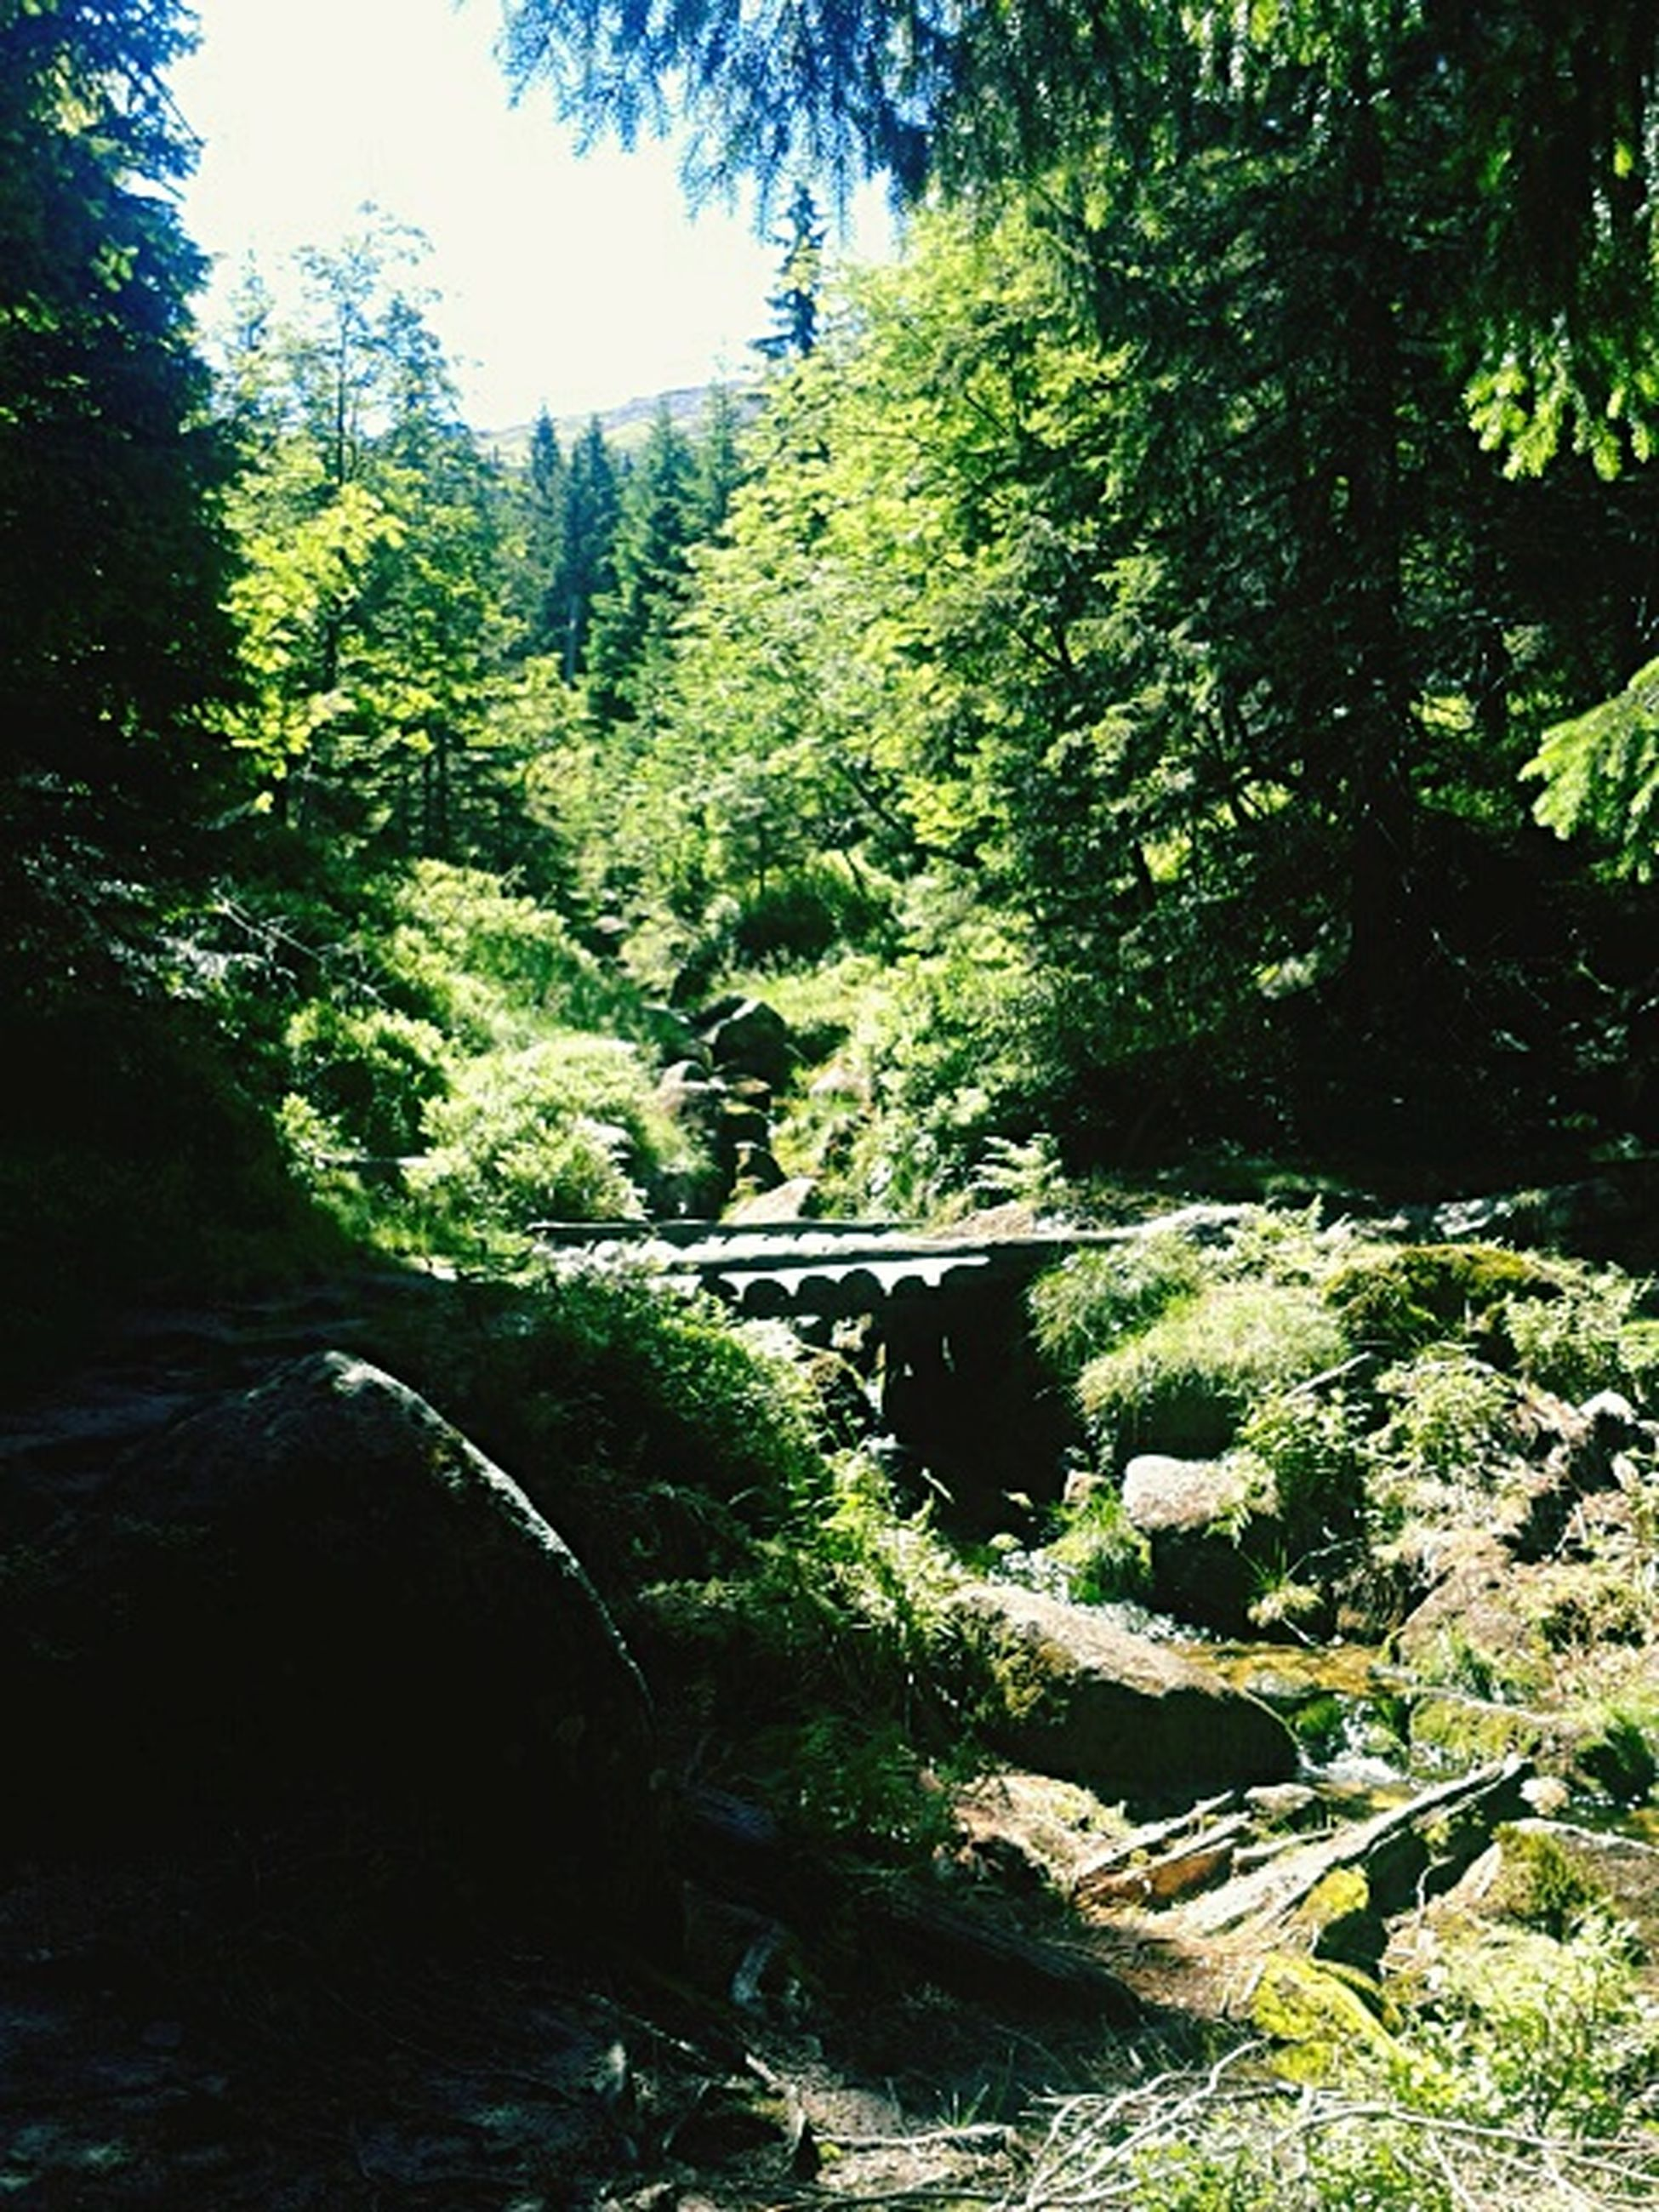 tree, stream, growth, tranquil scene, tranquility, scenics, water, nature, green color, beauty in nature, plant, non-urban scene, flowing, sunny, mountain, day, green, outdoors, woodland, no people, solitude, remote, vacations